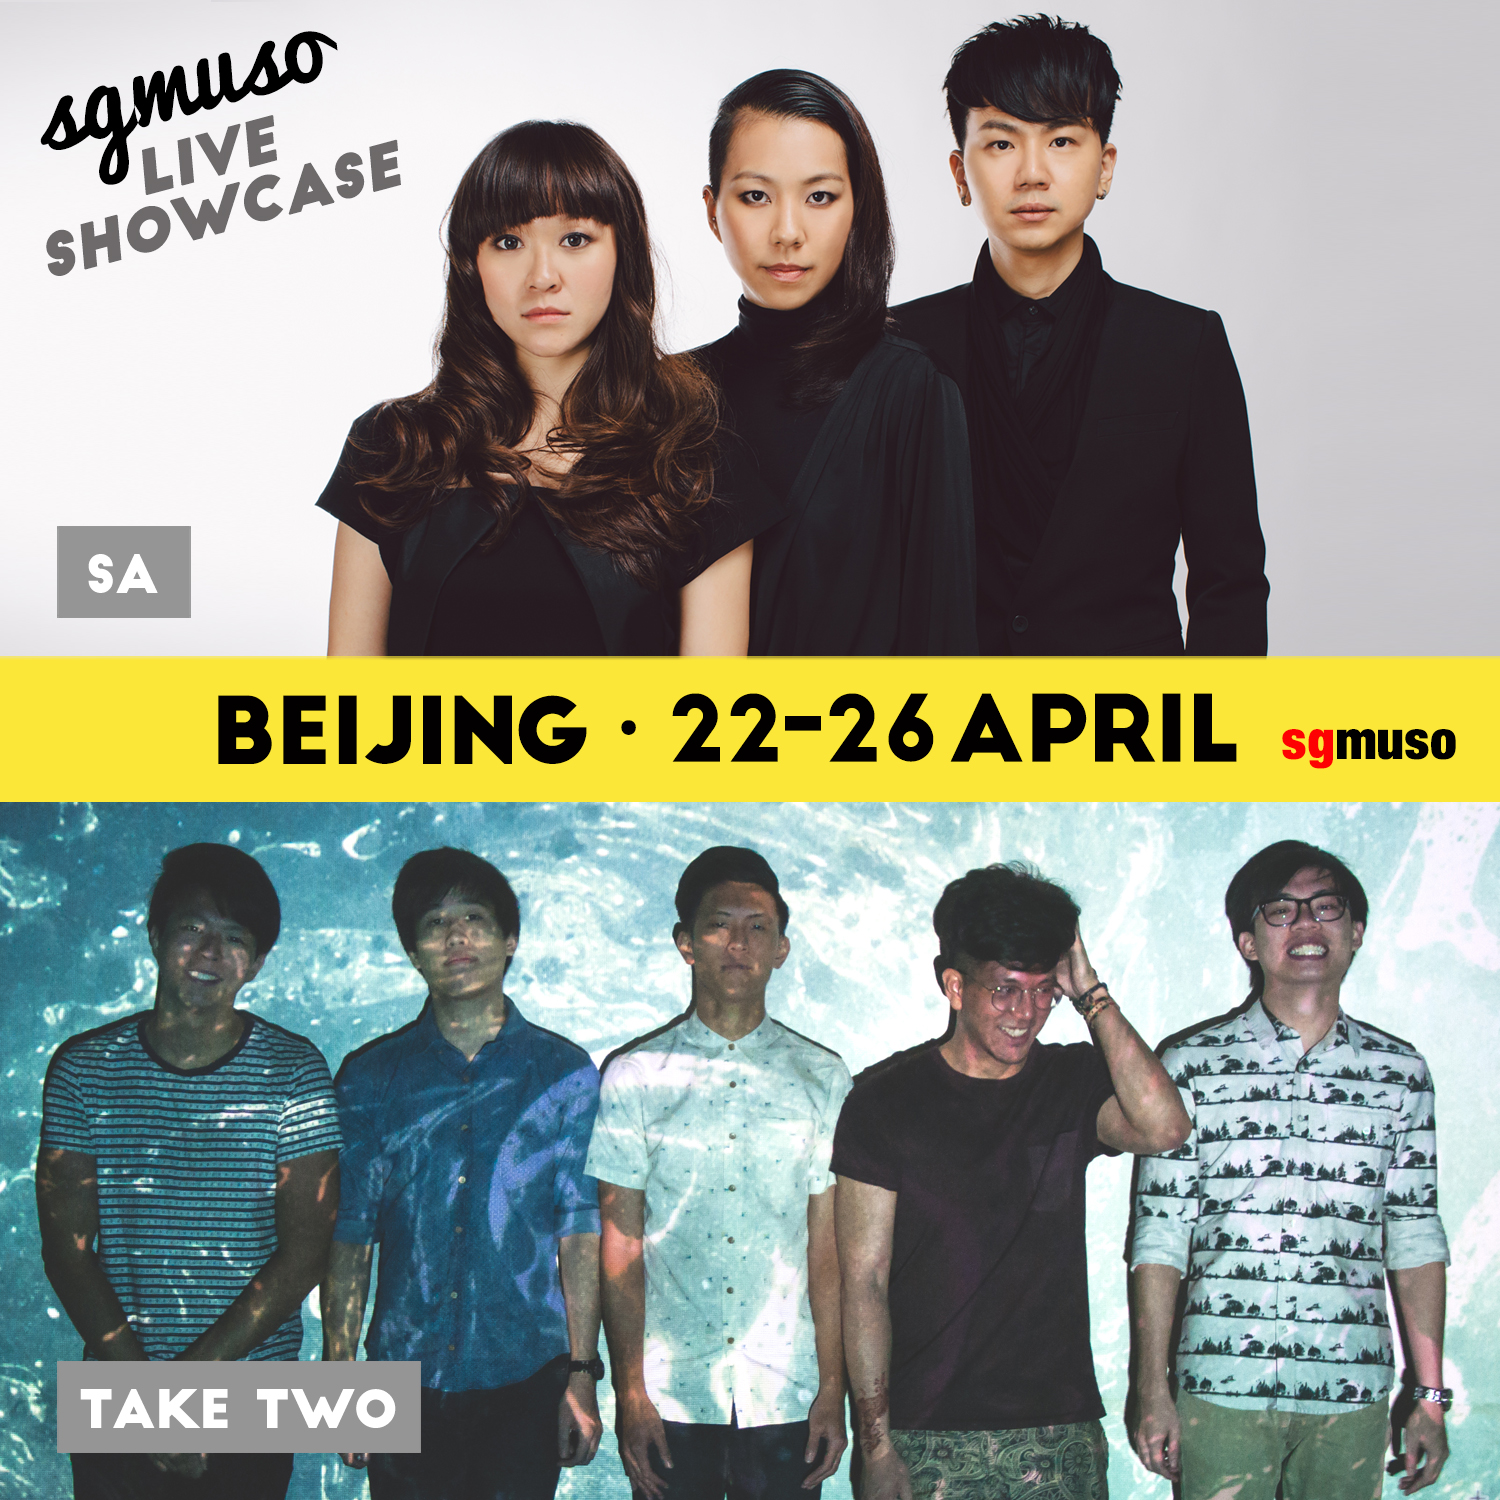 2015's acts for the SGMUSO showcase featured contemporary ethnic trio SA and indie pop outfit Take Two.